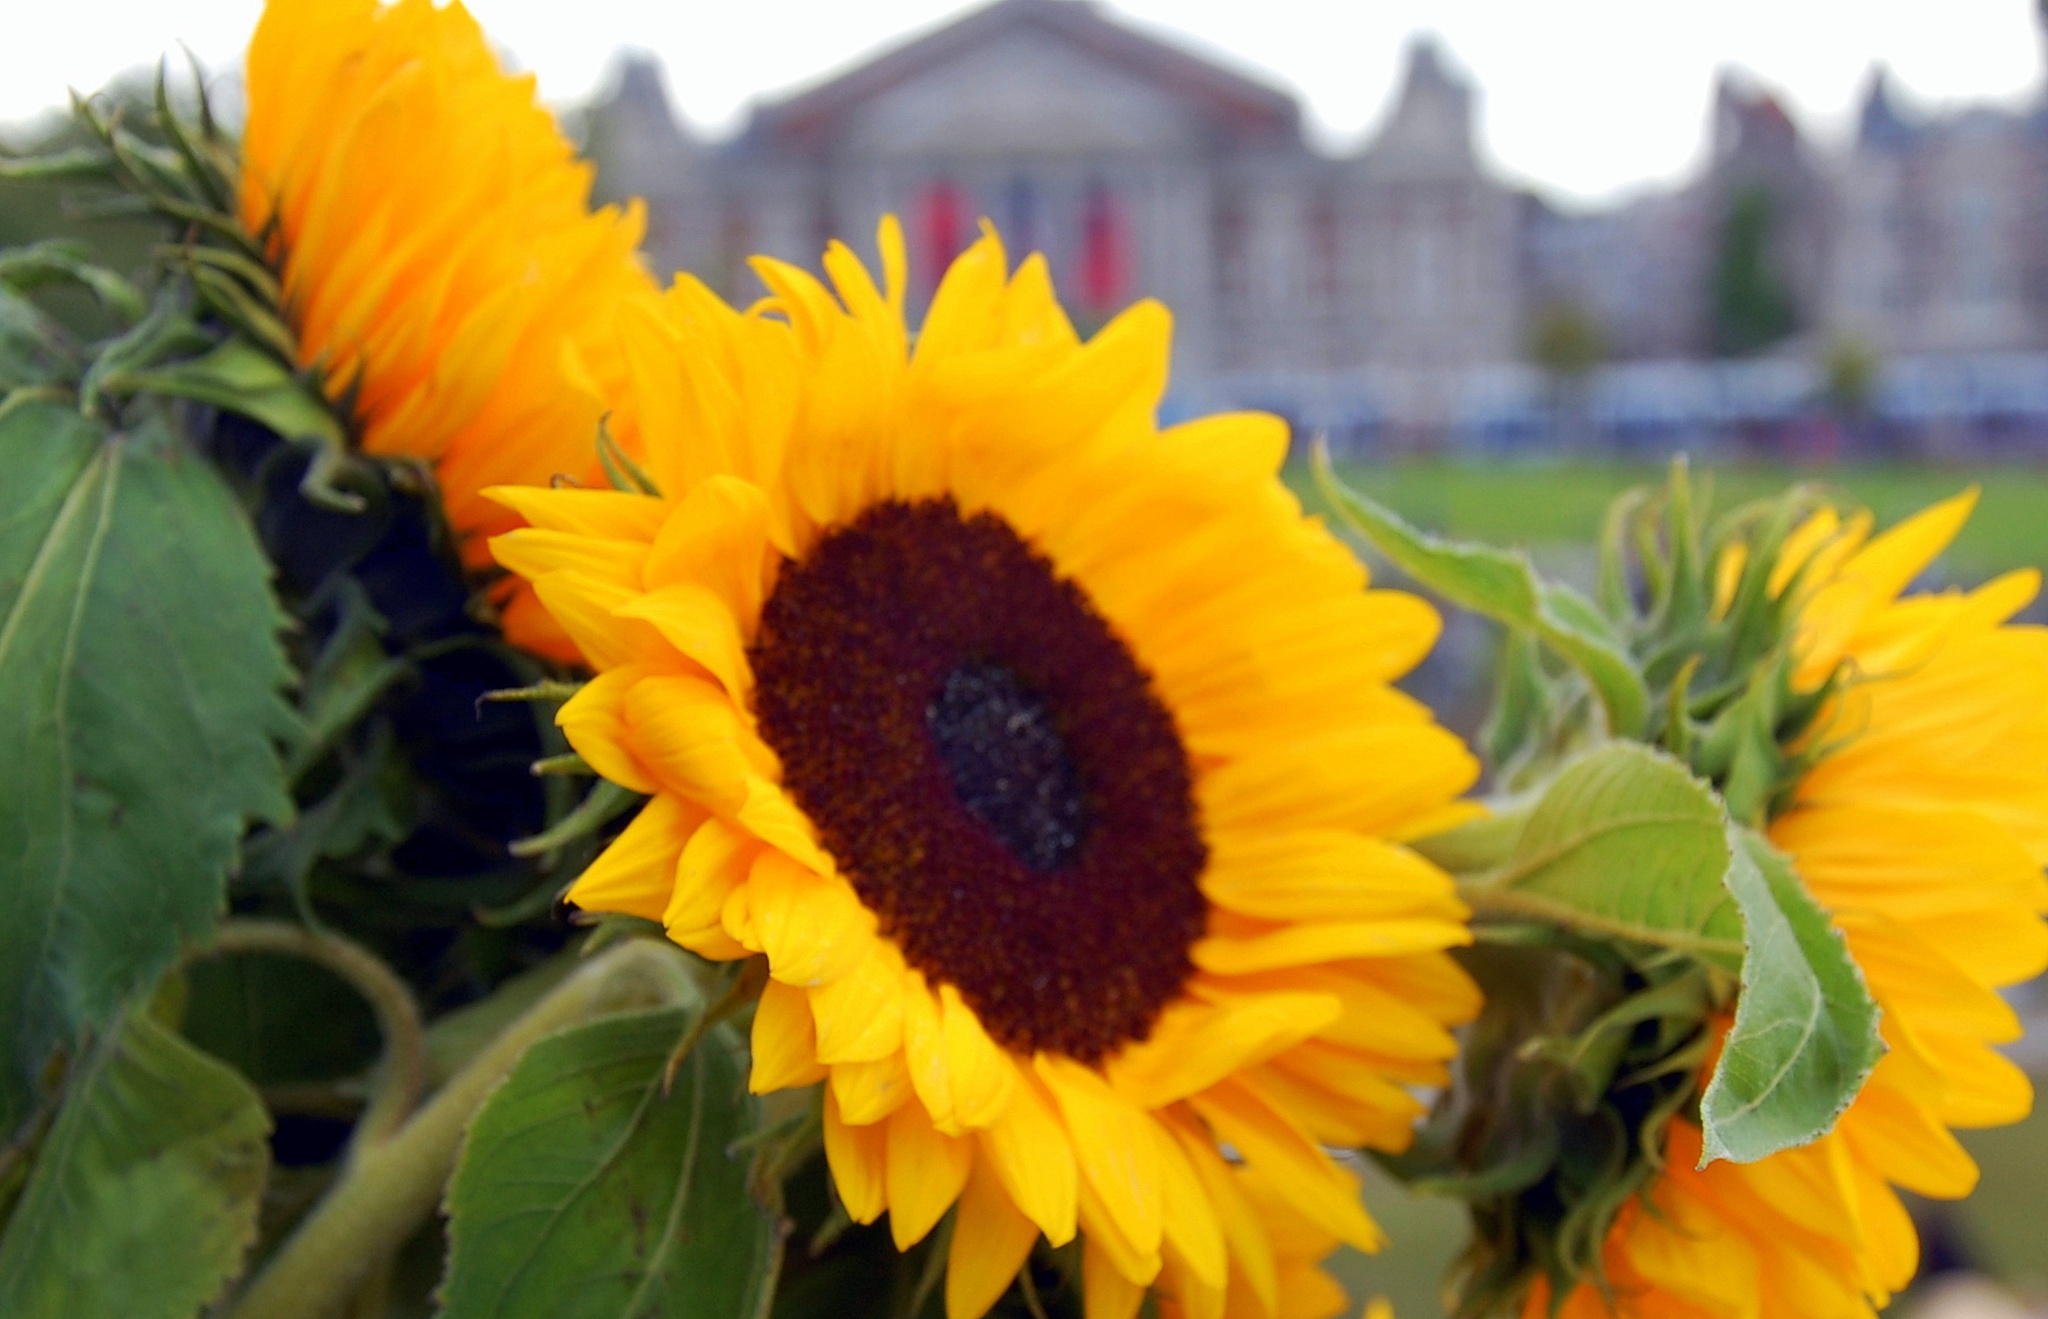 Sunflowers In Amsterdam by goga.dt